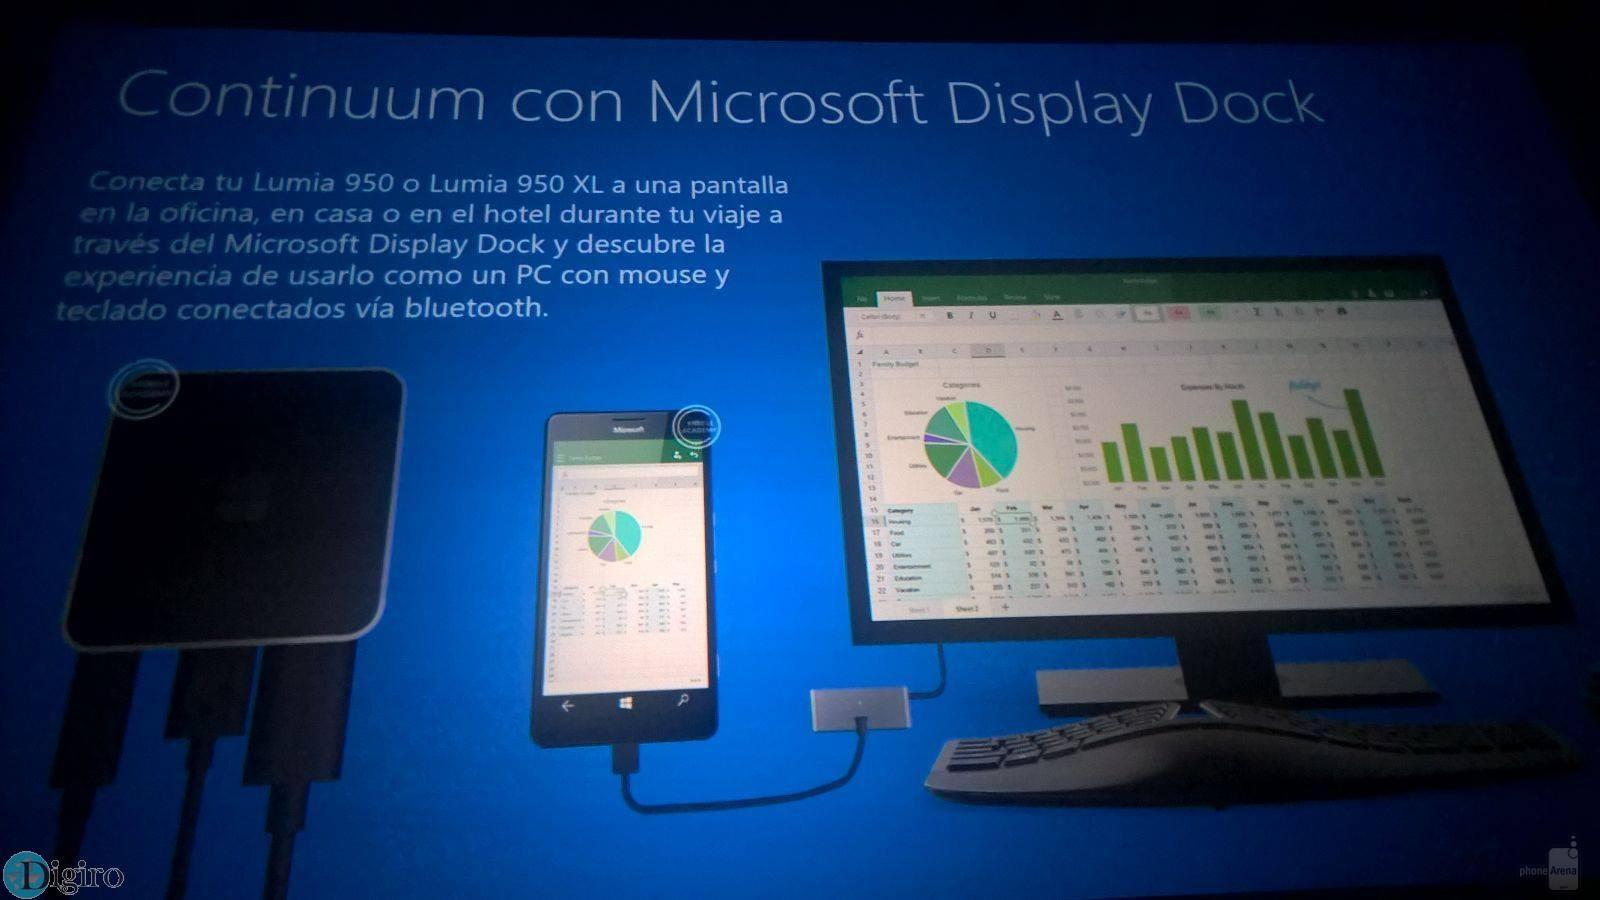 Lumia-950-and-950-XL-key-details-confirmed (1)